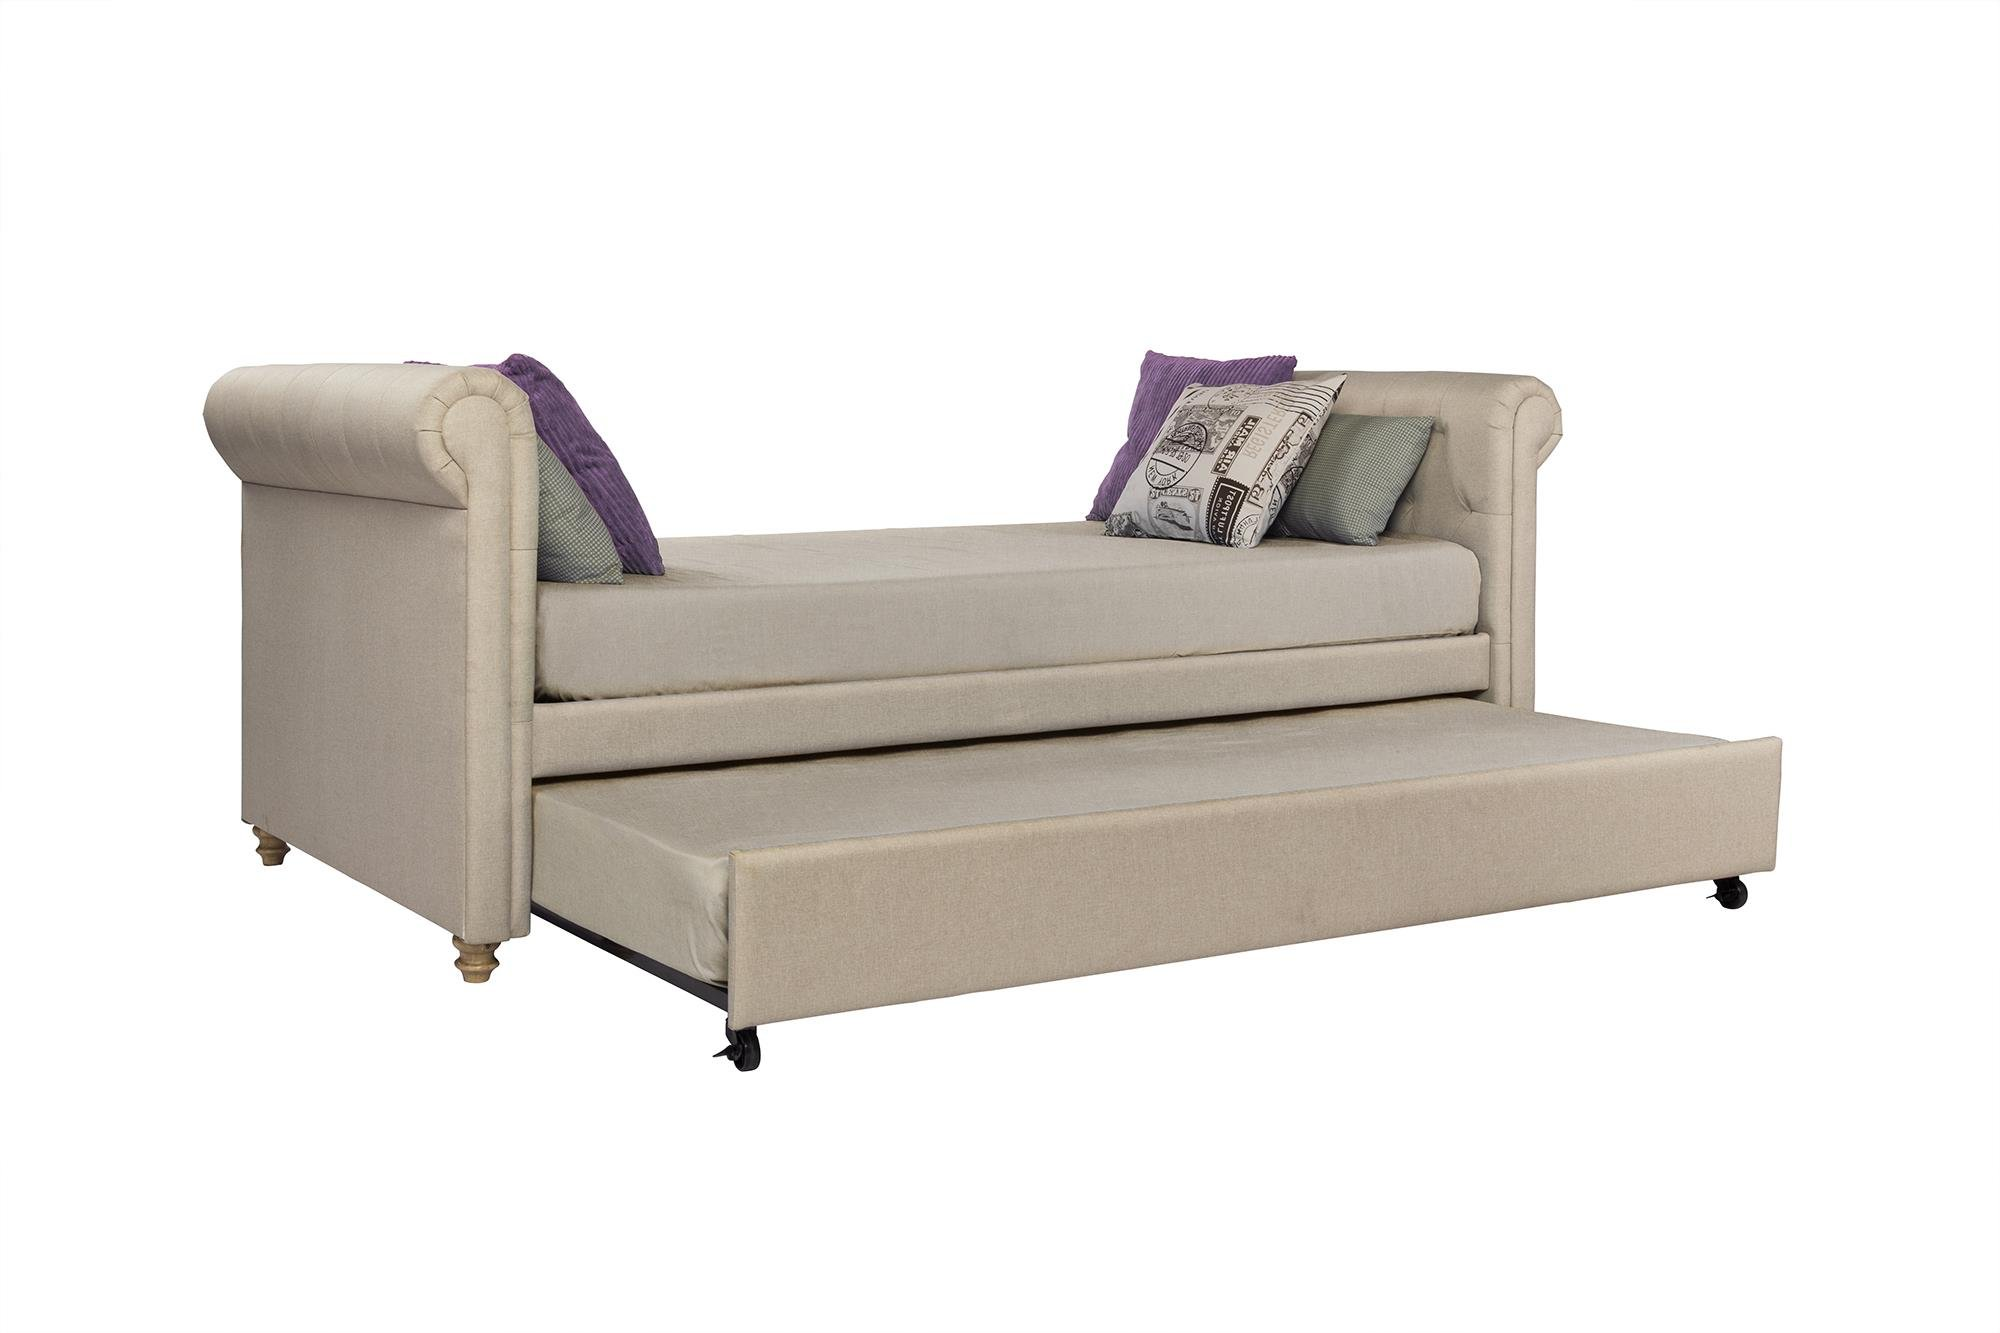 Amazoncom DHP Sophia Upholstered Daybed and Trundle